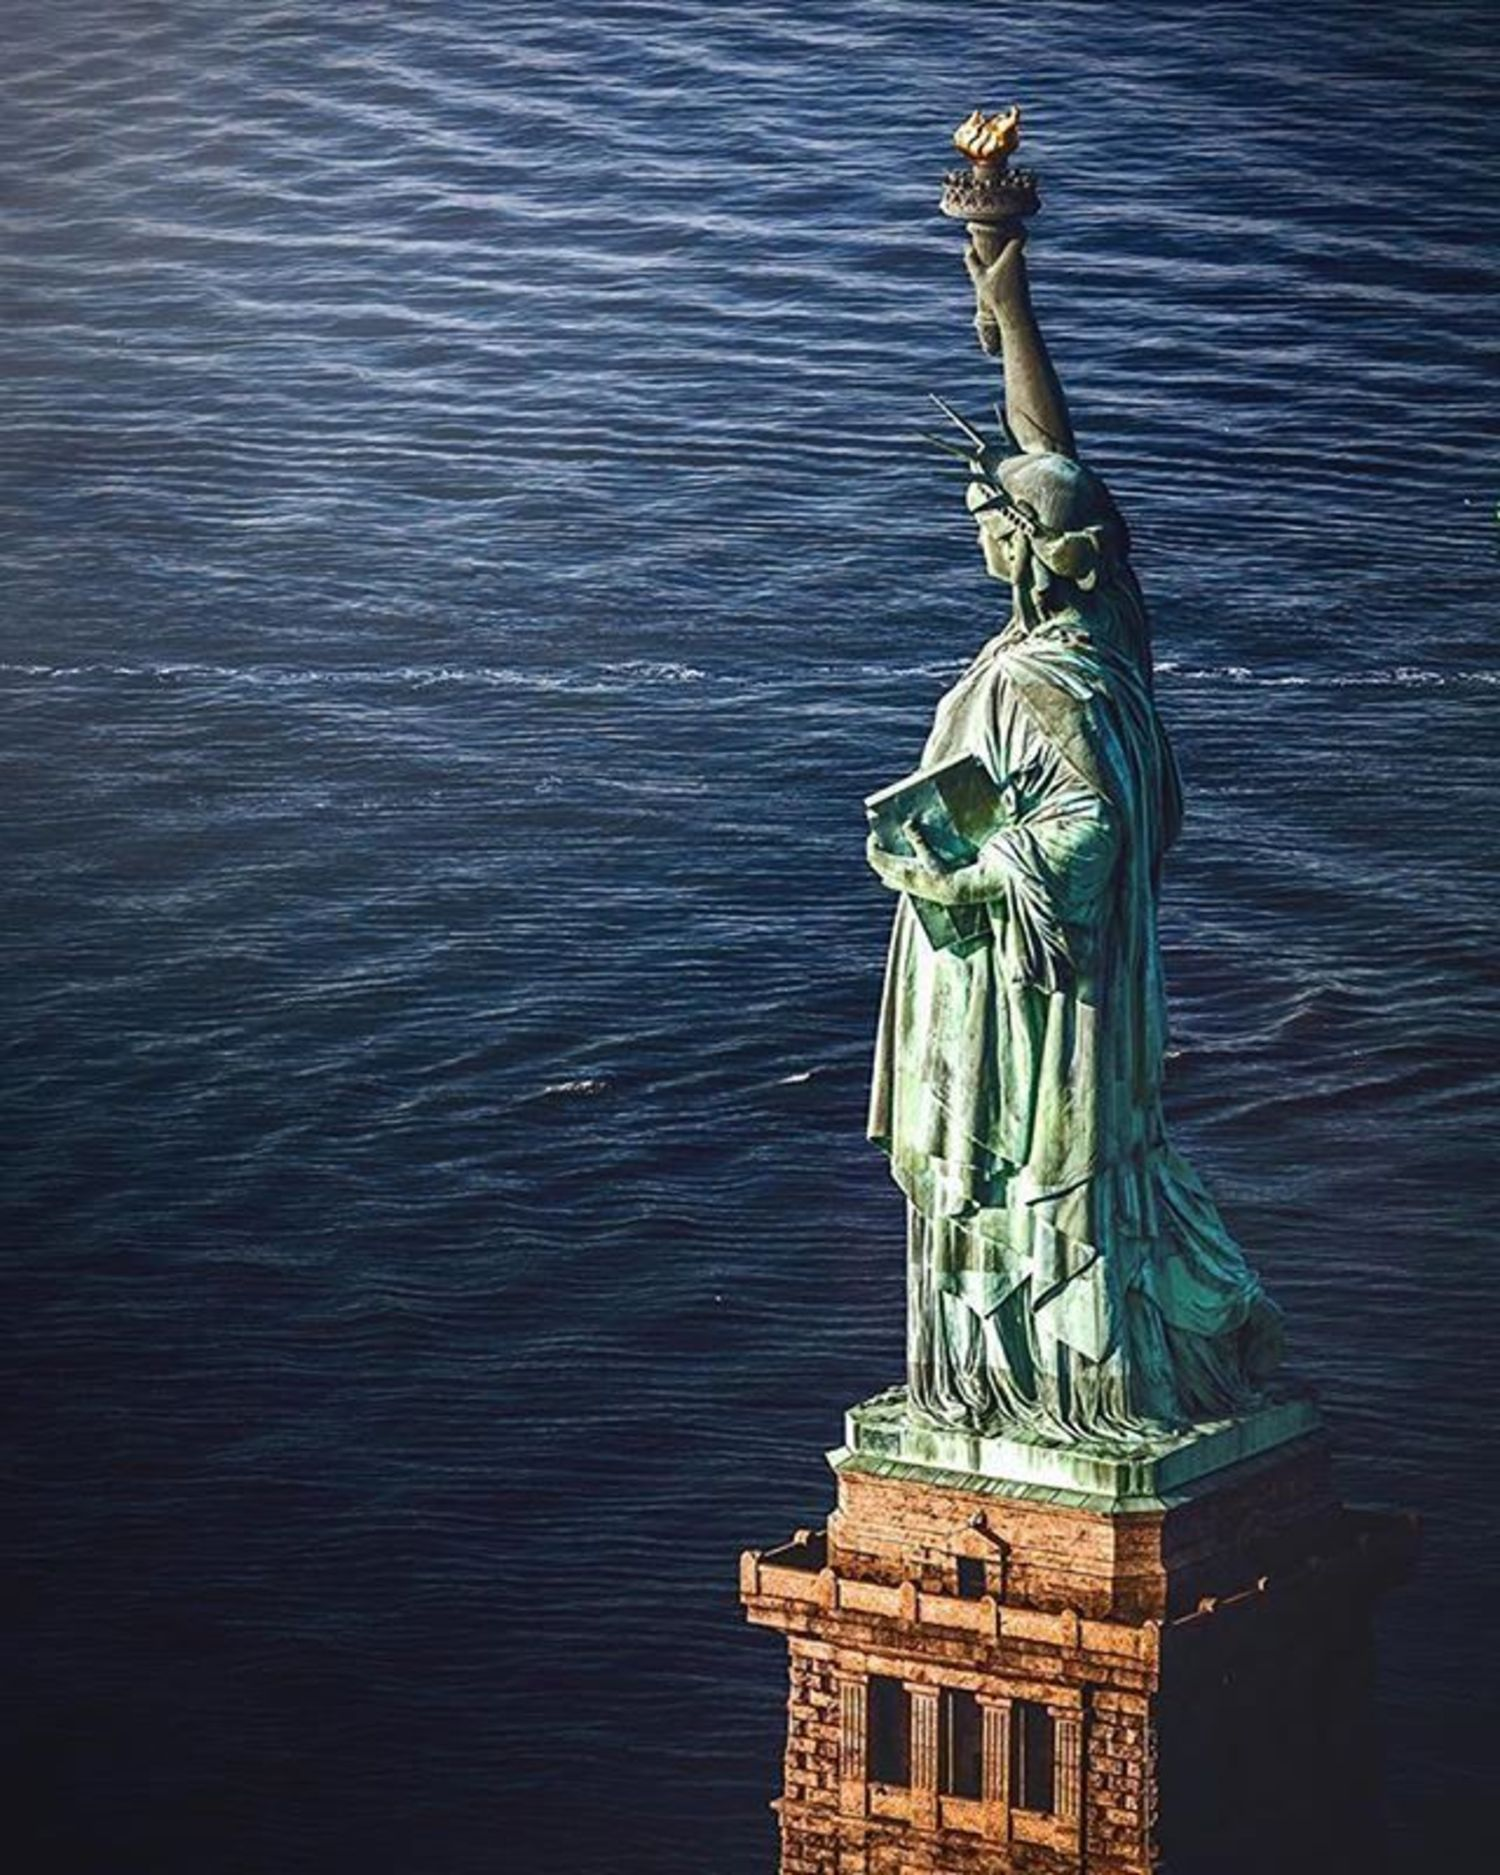 Statue of Liberty, New York, New York. Photo via @beholdingeye #viewingnyc #newyorkcity #newyork #nyc